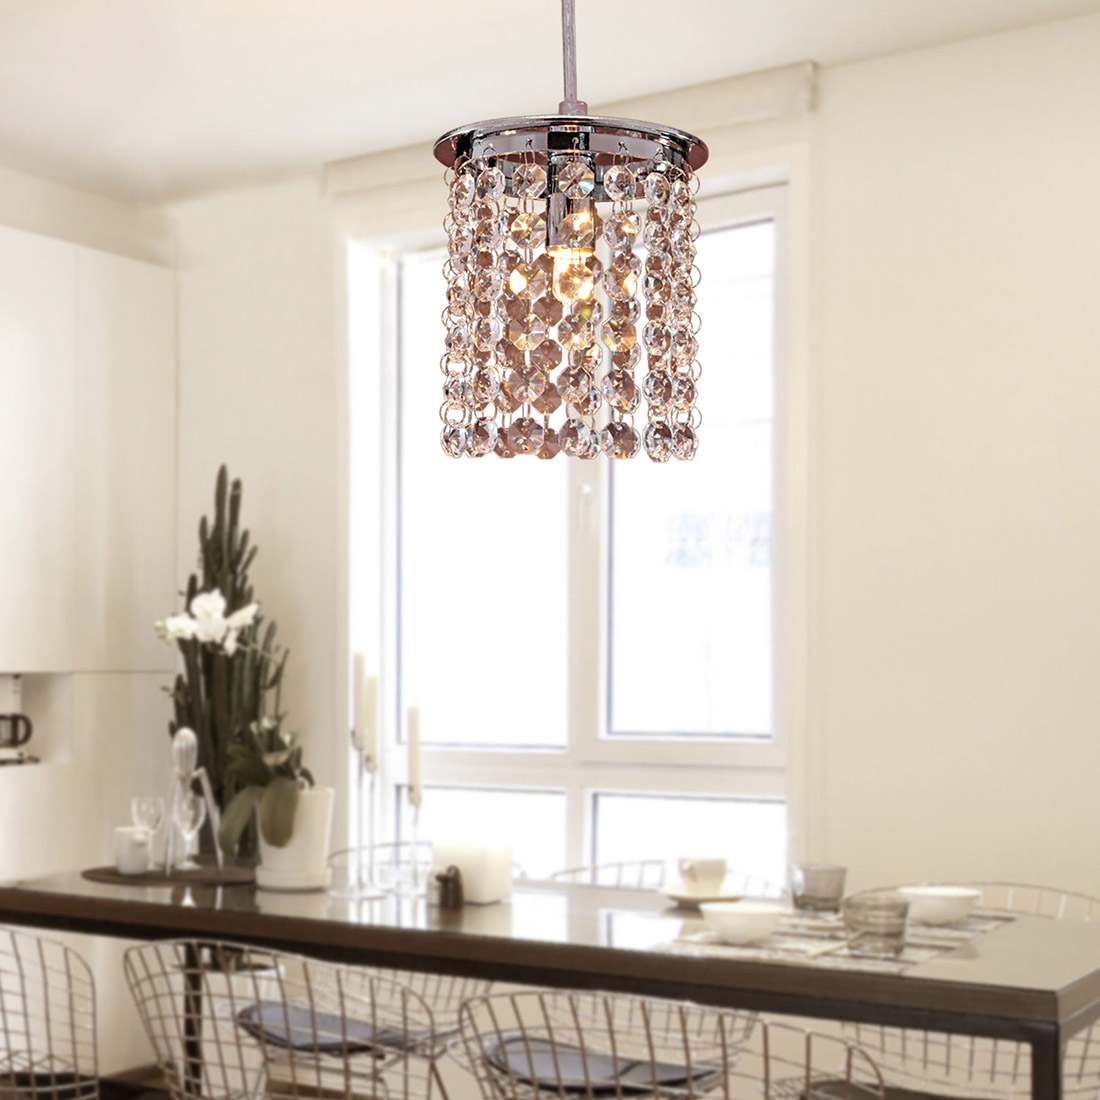 Dining Room Modern Chandelier Crystal Ceiling Light Modern Chandelier Pendant Kitchen